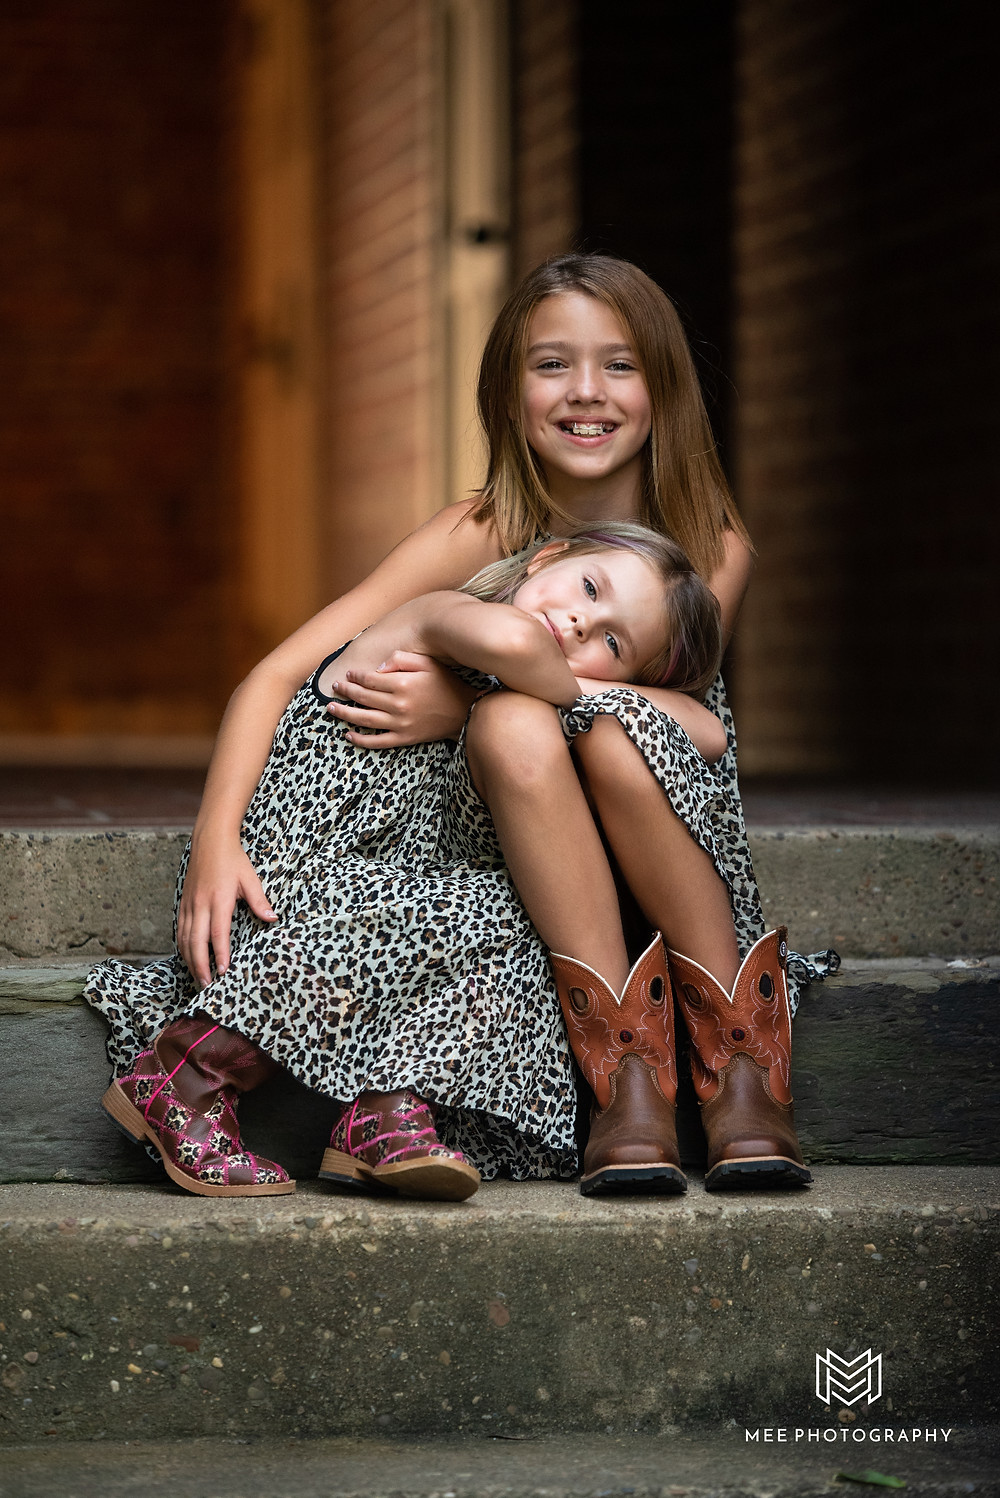 Sisters in leopard print dresses cuddled up on the stairs during their family session